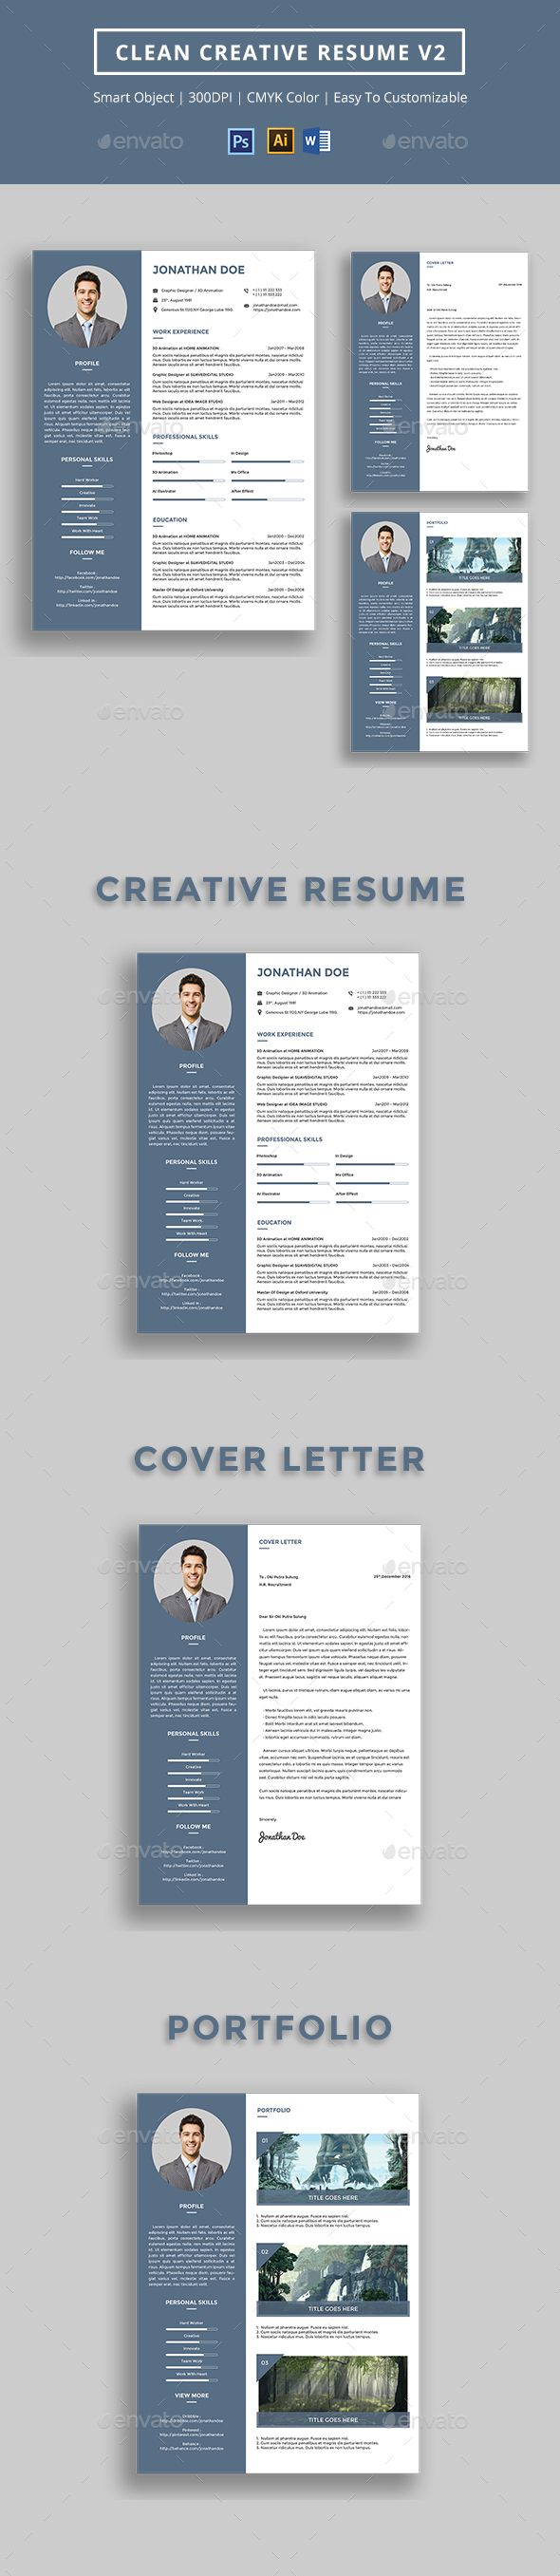 Clean Creative #Resume v2  - Resumes Stationery Download here: https://graphicriver.net/item/clean-creative-resume-v2-/16703232?ref=alena994